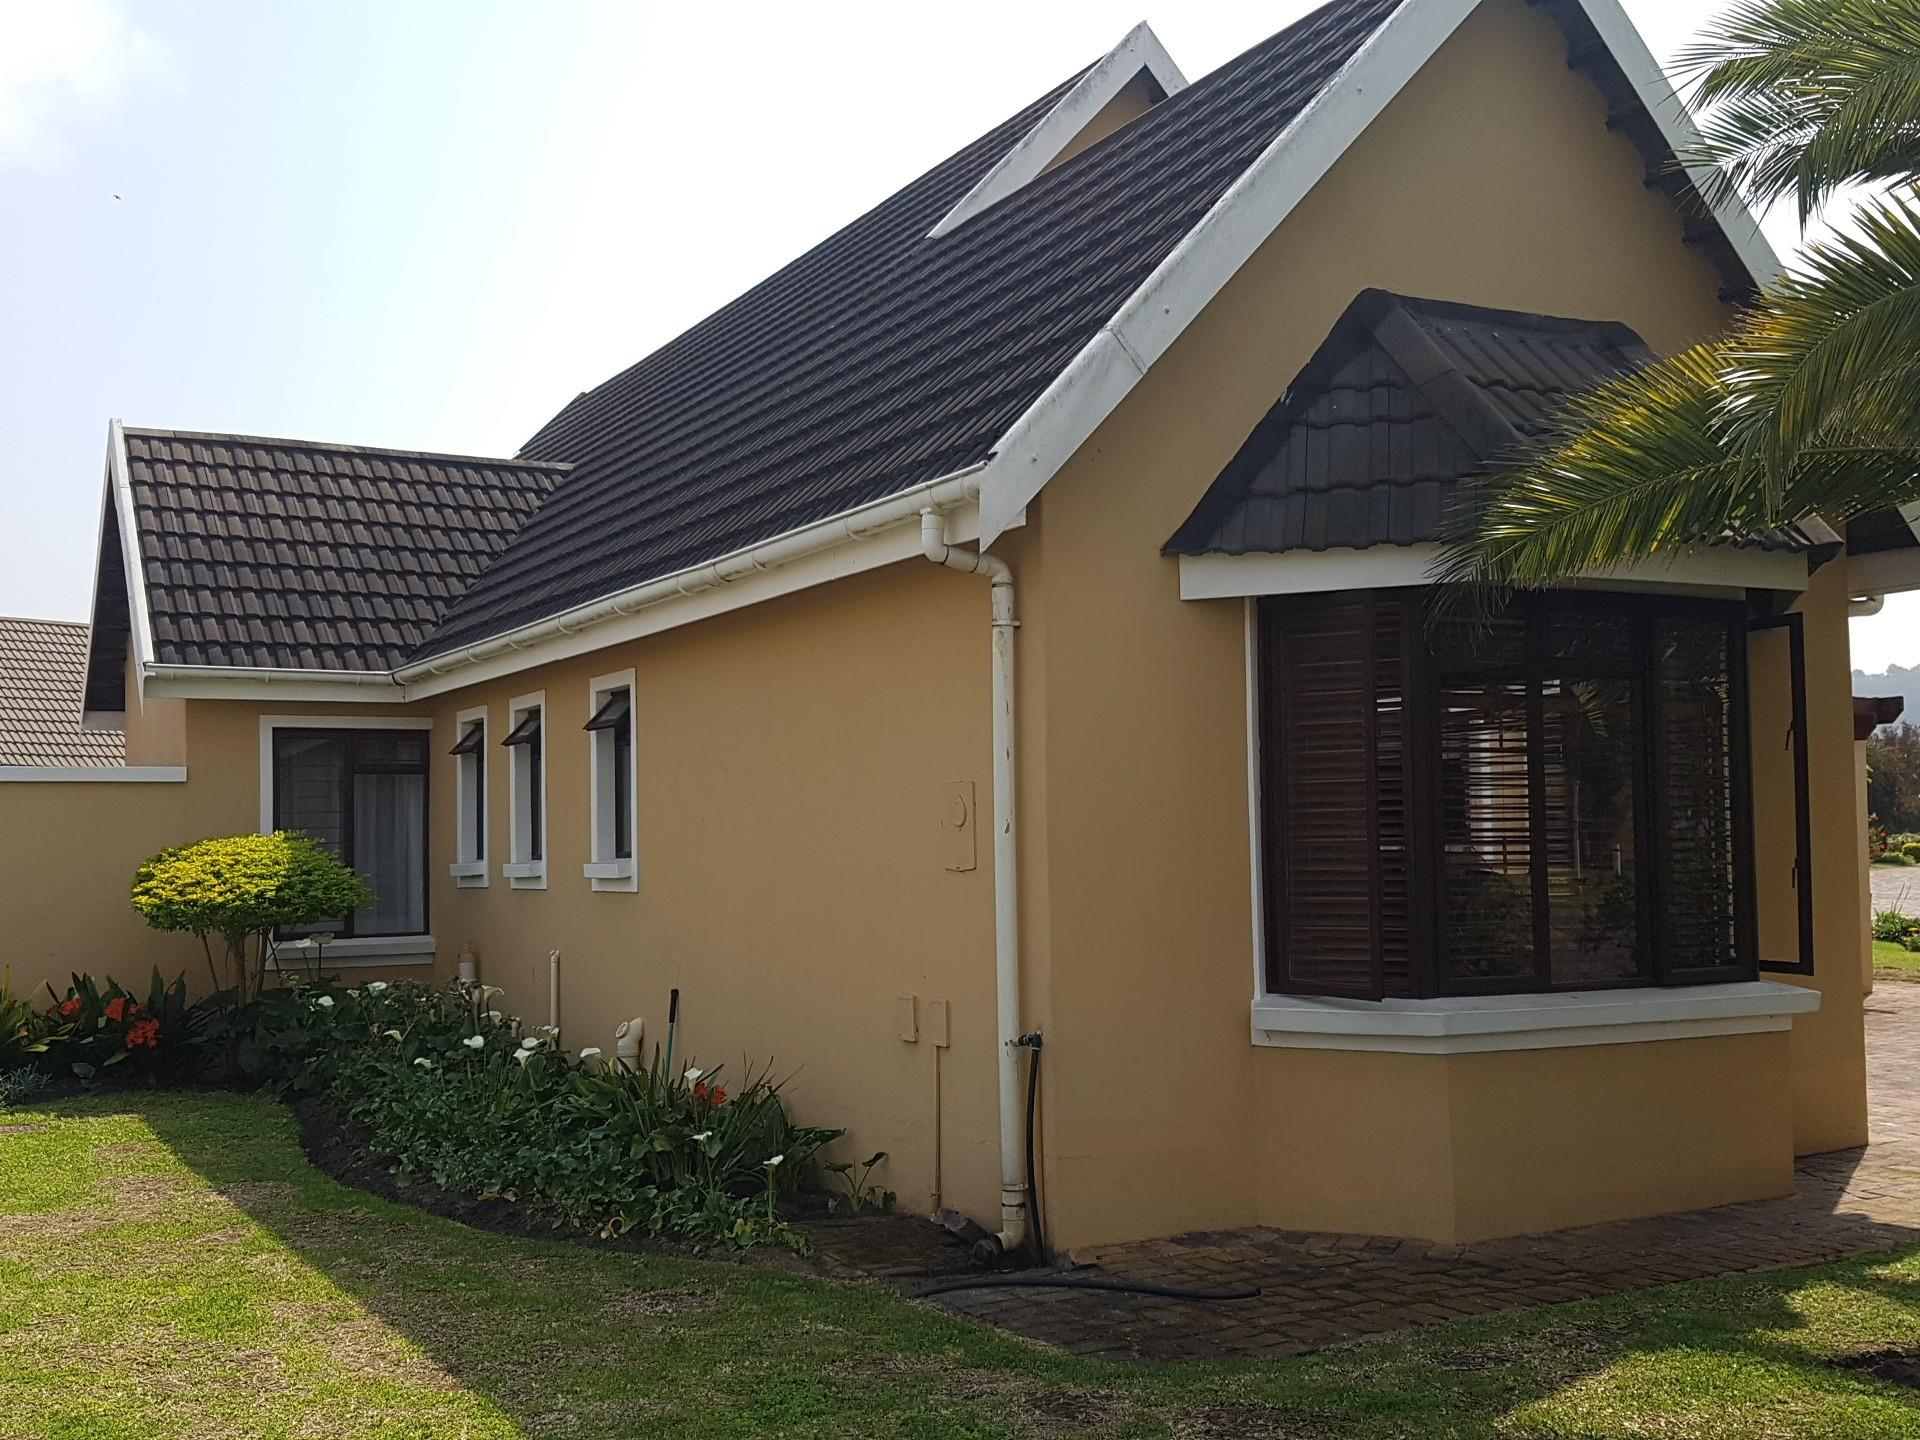 3 Bedroom House To Rent in The Island